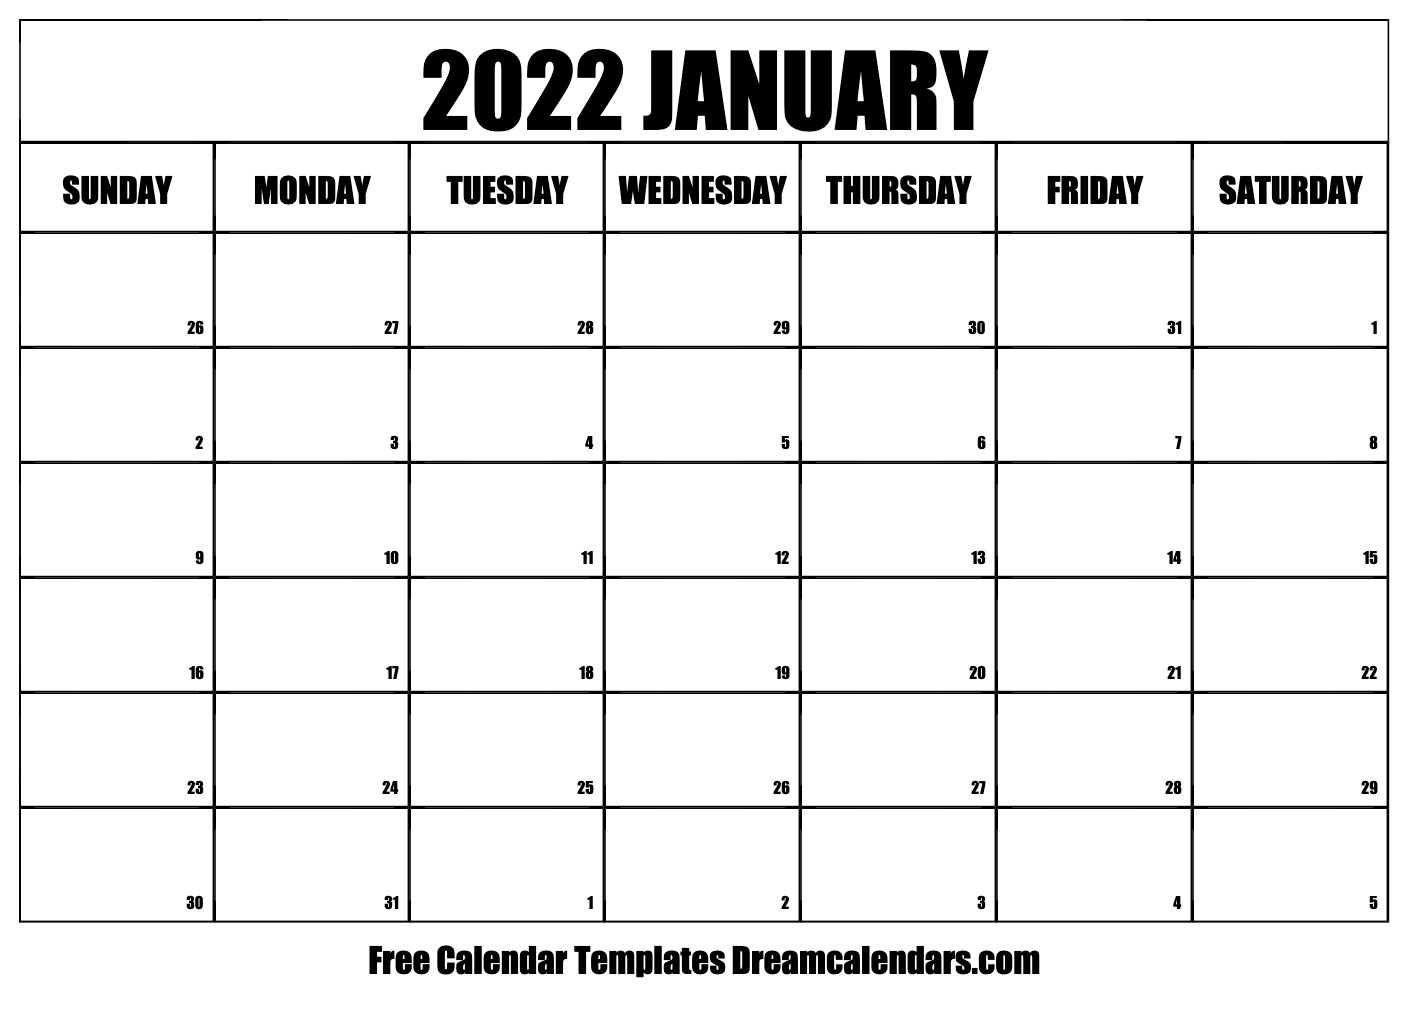 graphic regarding 2022 Calendar Printable identify Printable January 2022 Calendar